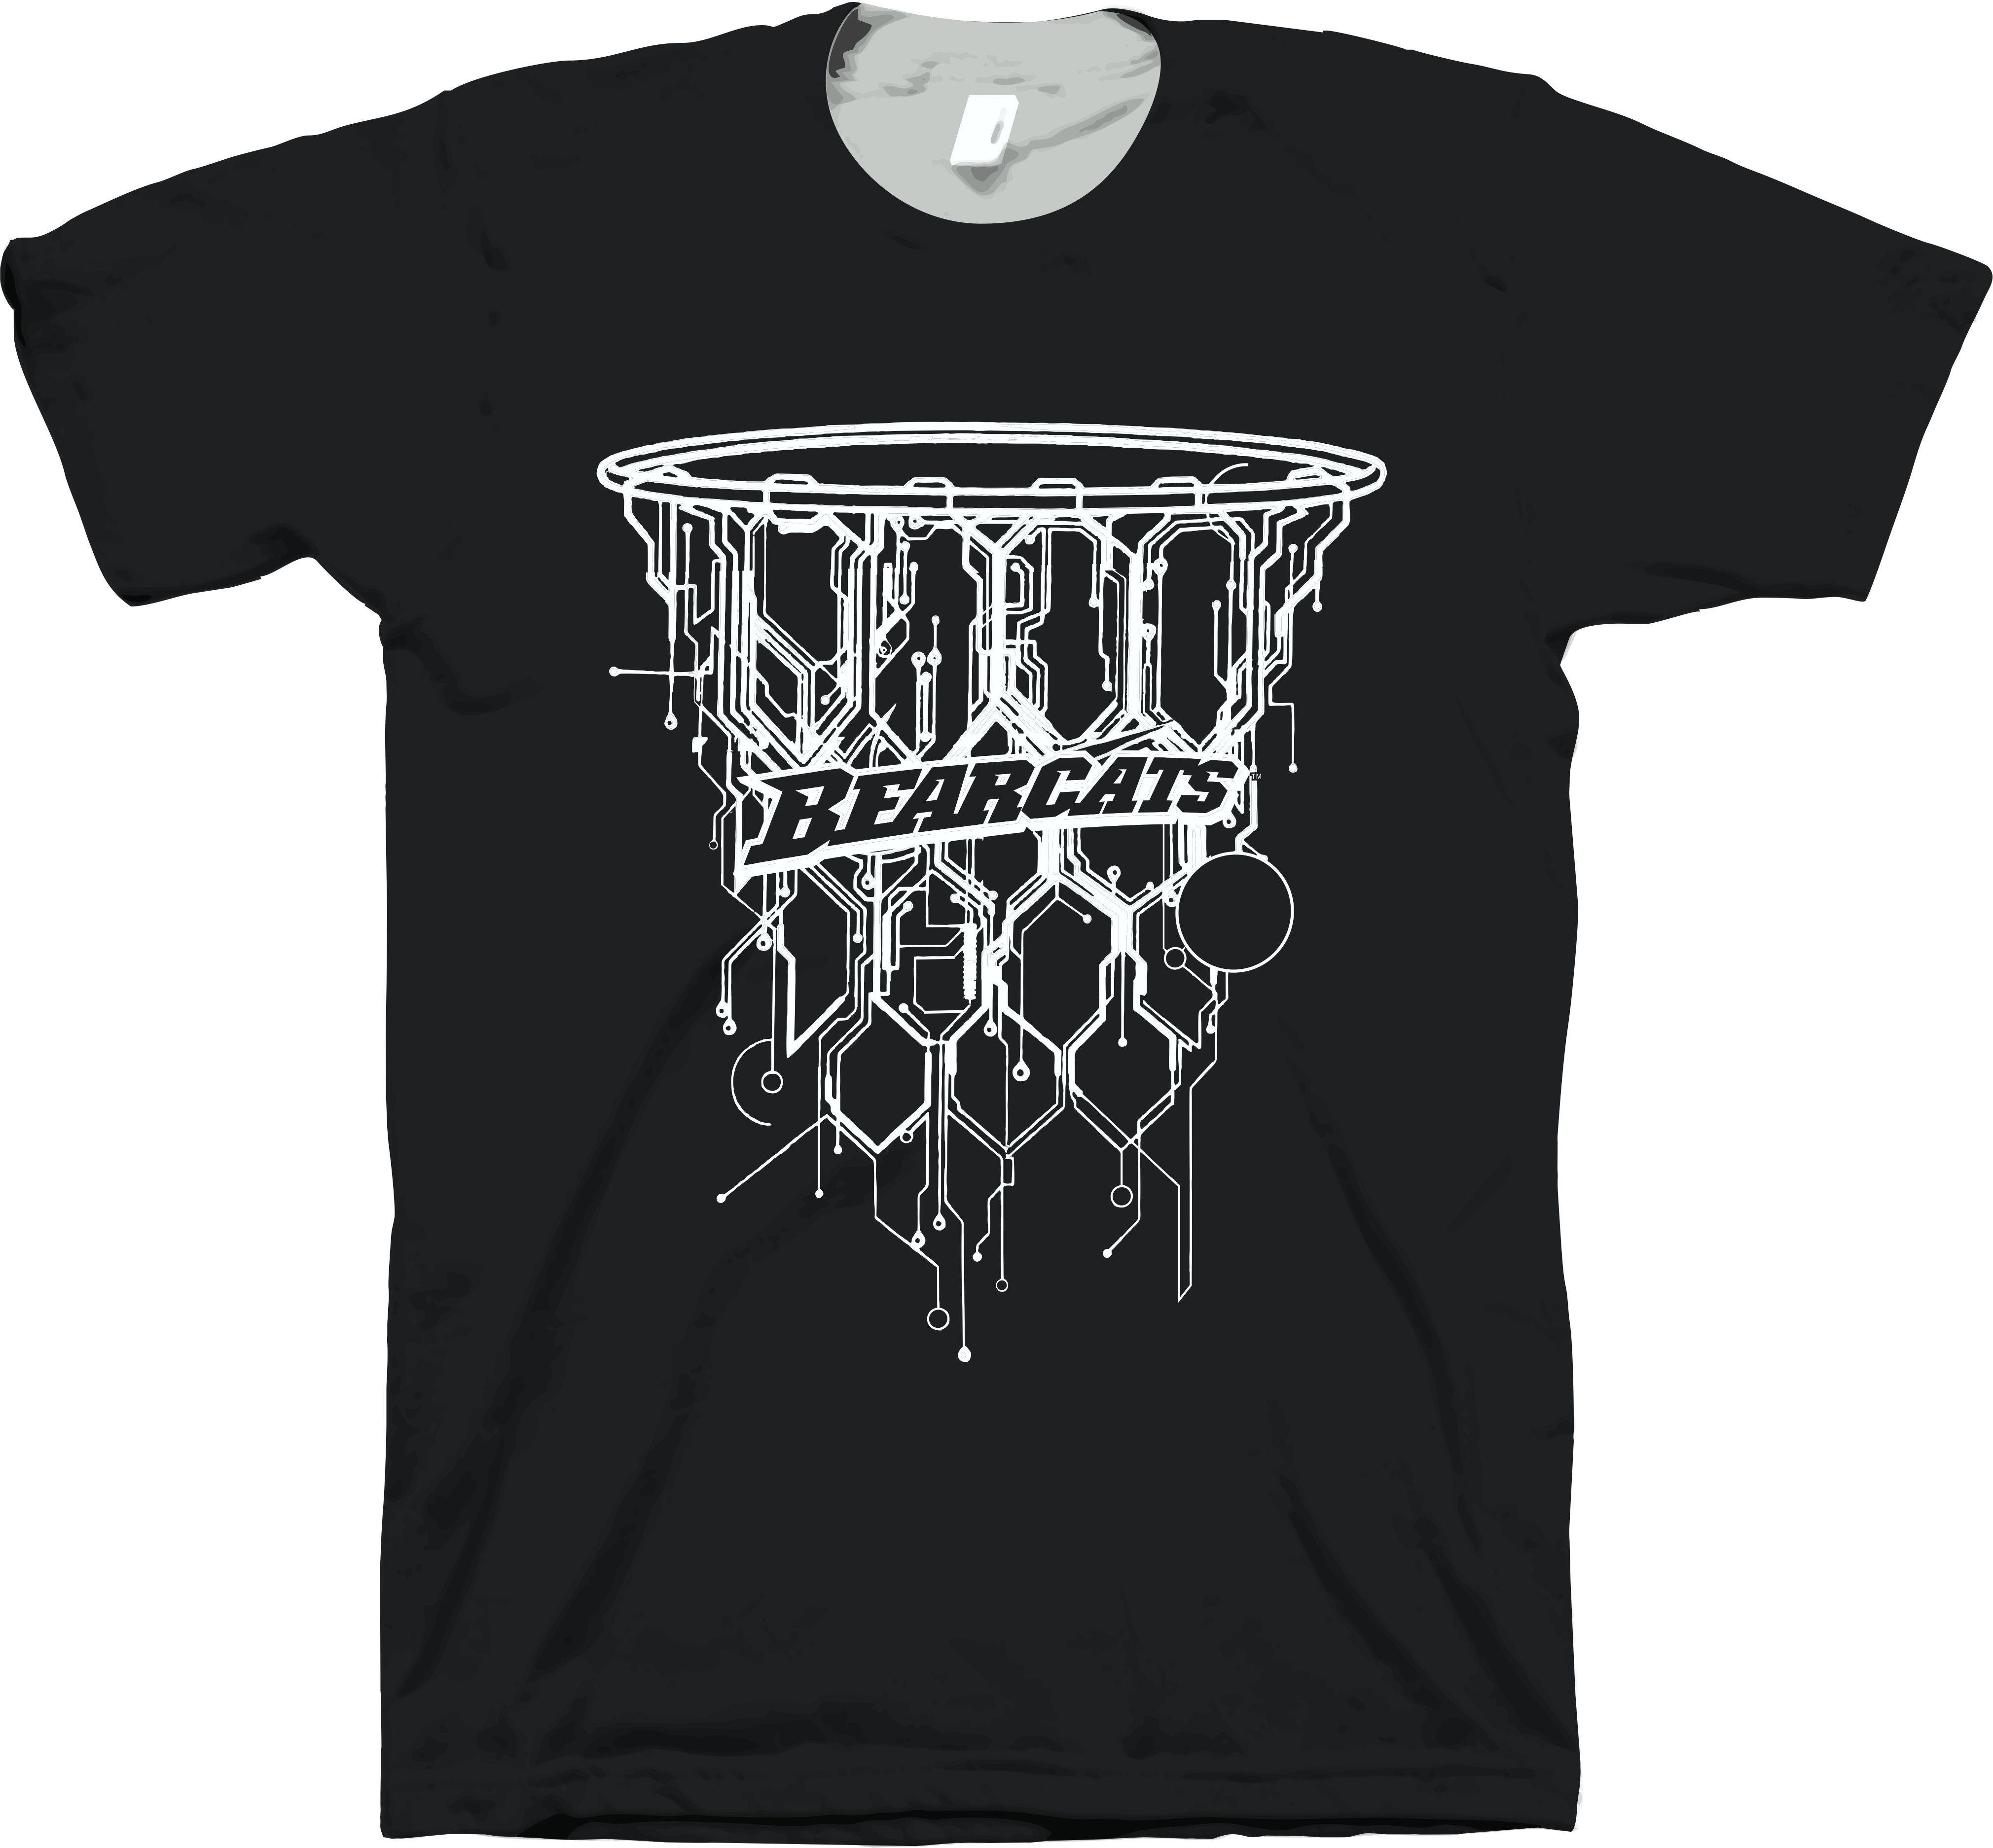 Design t shirt on mac - Find This Pin And More On T Shirt By Asdzan197711 Bearcat Basketball Design